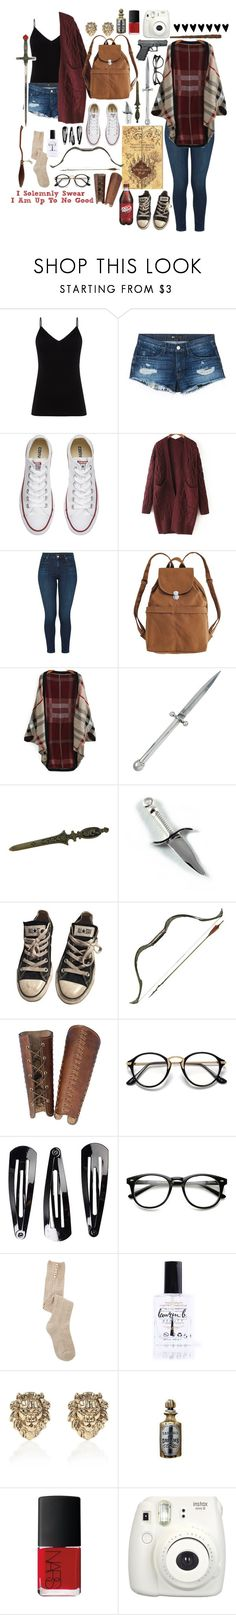 """""""I Solemnly Swear I Am Up To No Good"""" by gracie-keaser ❤ liked on Polyvore featuring Diane Von Furstenberg, 3x1, Converse, WithChic, J Brand, BAGGU, Kieselstein-Cord, NLY Accessories, Lauren B. Beauty and Nimbus"""